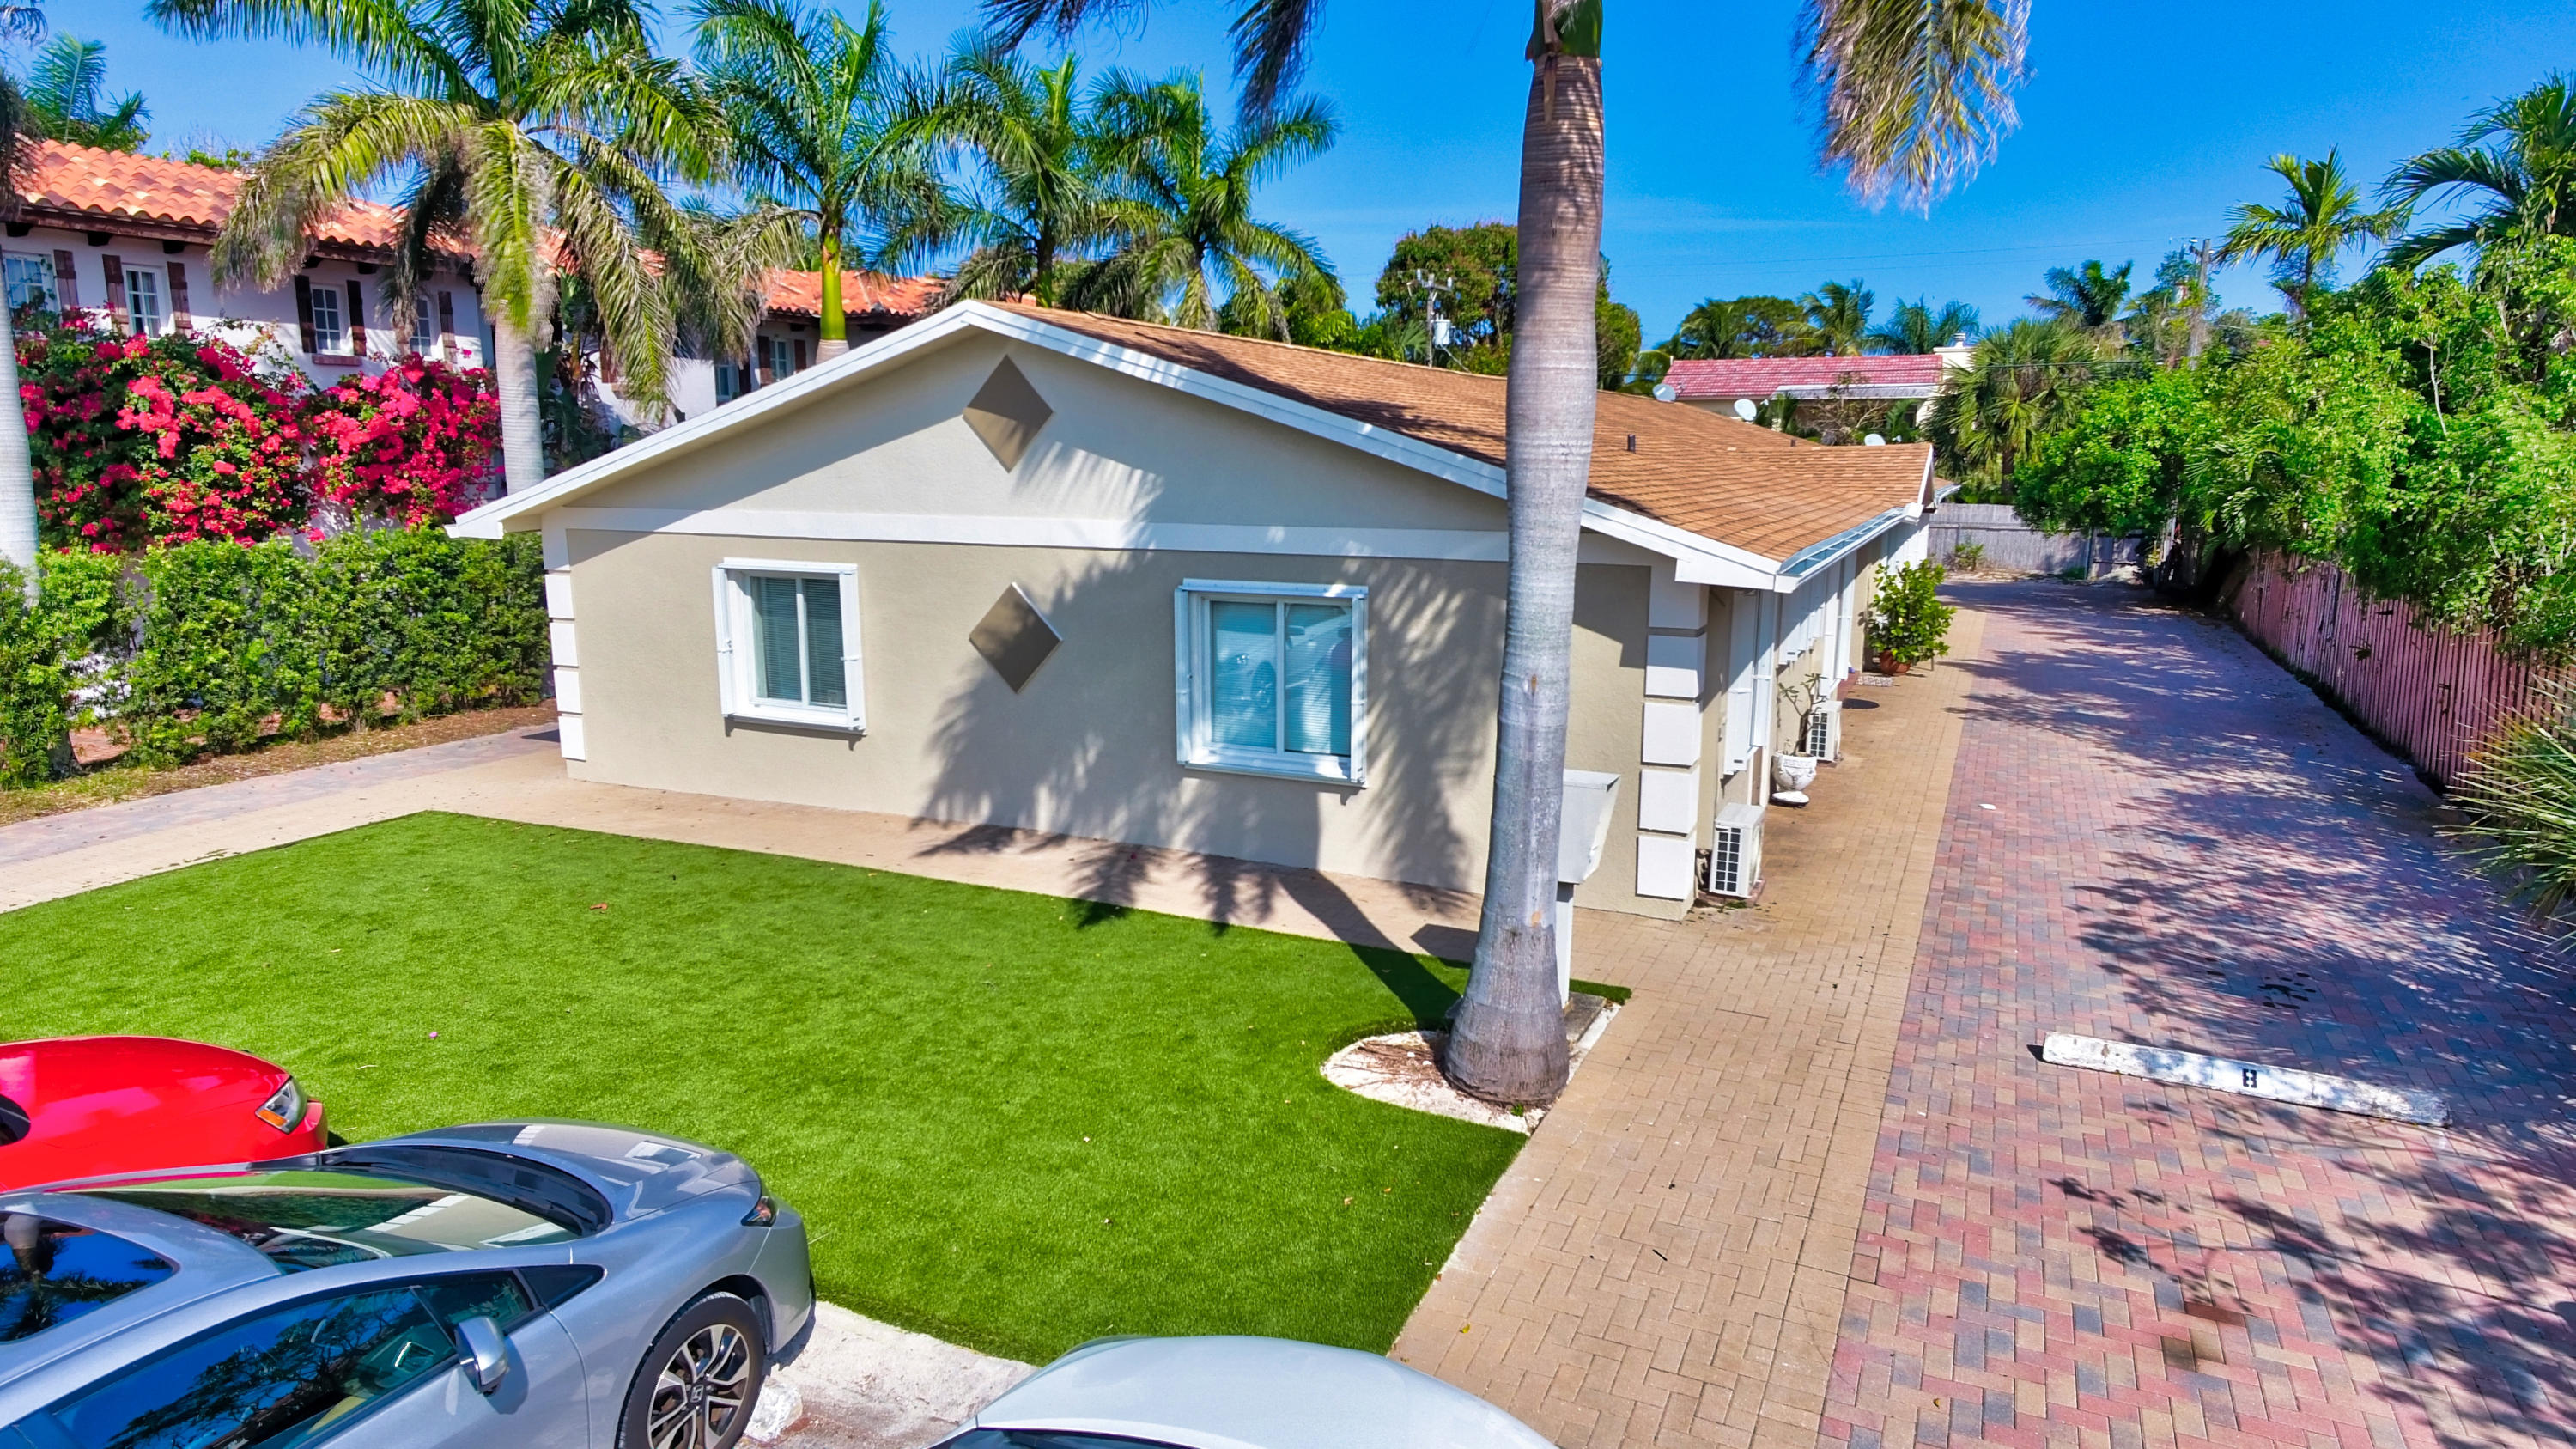 In the heart of booming Delray this fully rented and renovated 8 unit building is ready and waiting for you to take it to the next level!    100% occupancy since the current owner bought the property in 2013.   This building features four efficiencies and four 1 bedroom units, on site coin operated tenant laundry facility and also has a brand new roof.  Located a half mile from downtown Delray and less than a mile to the beach! An already strong rental could be even stronger in comparison to the vacation rentals in the area who charge up to 3 times more based on monthly rentals.   This turnkey operation is ready for a new owner.